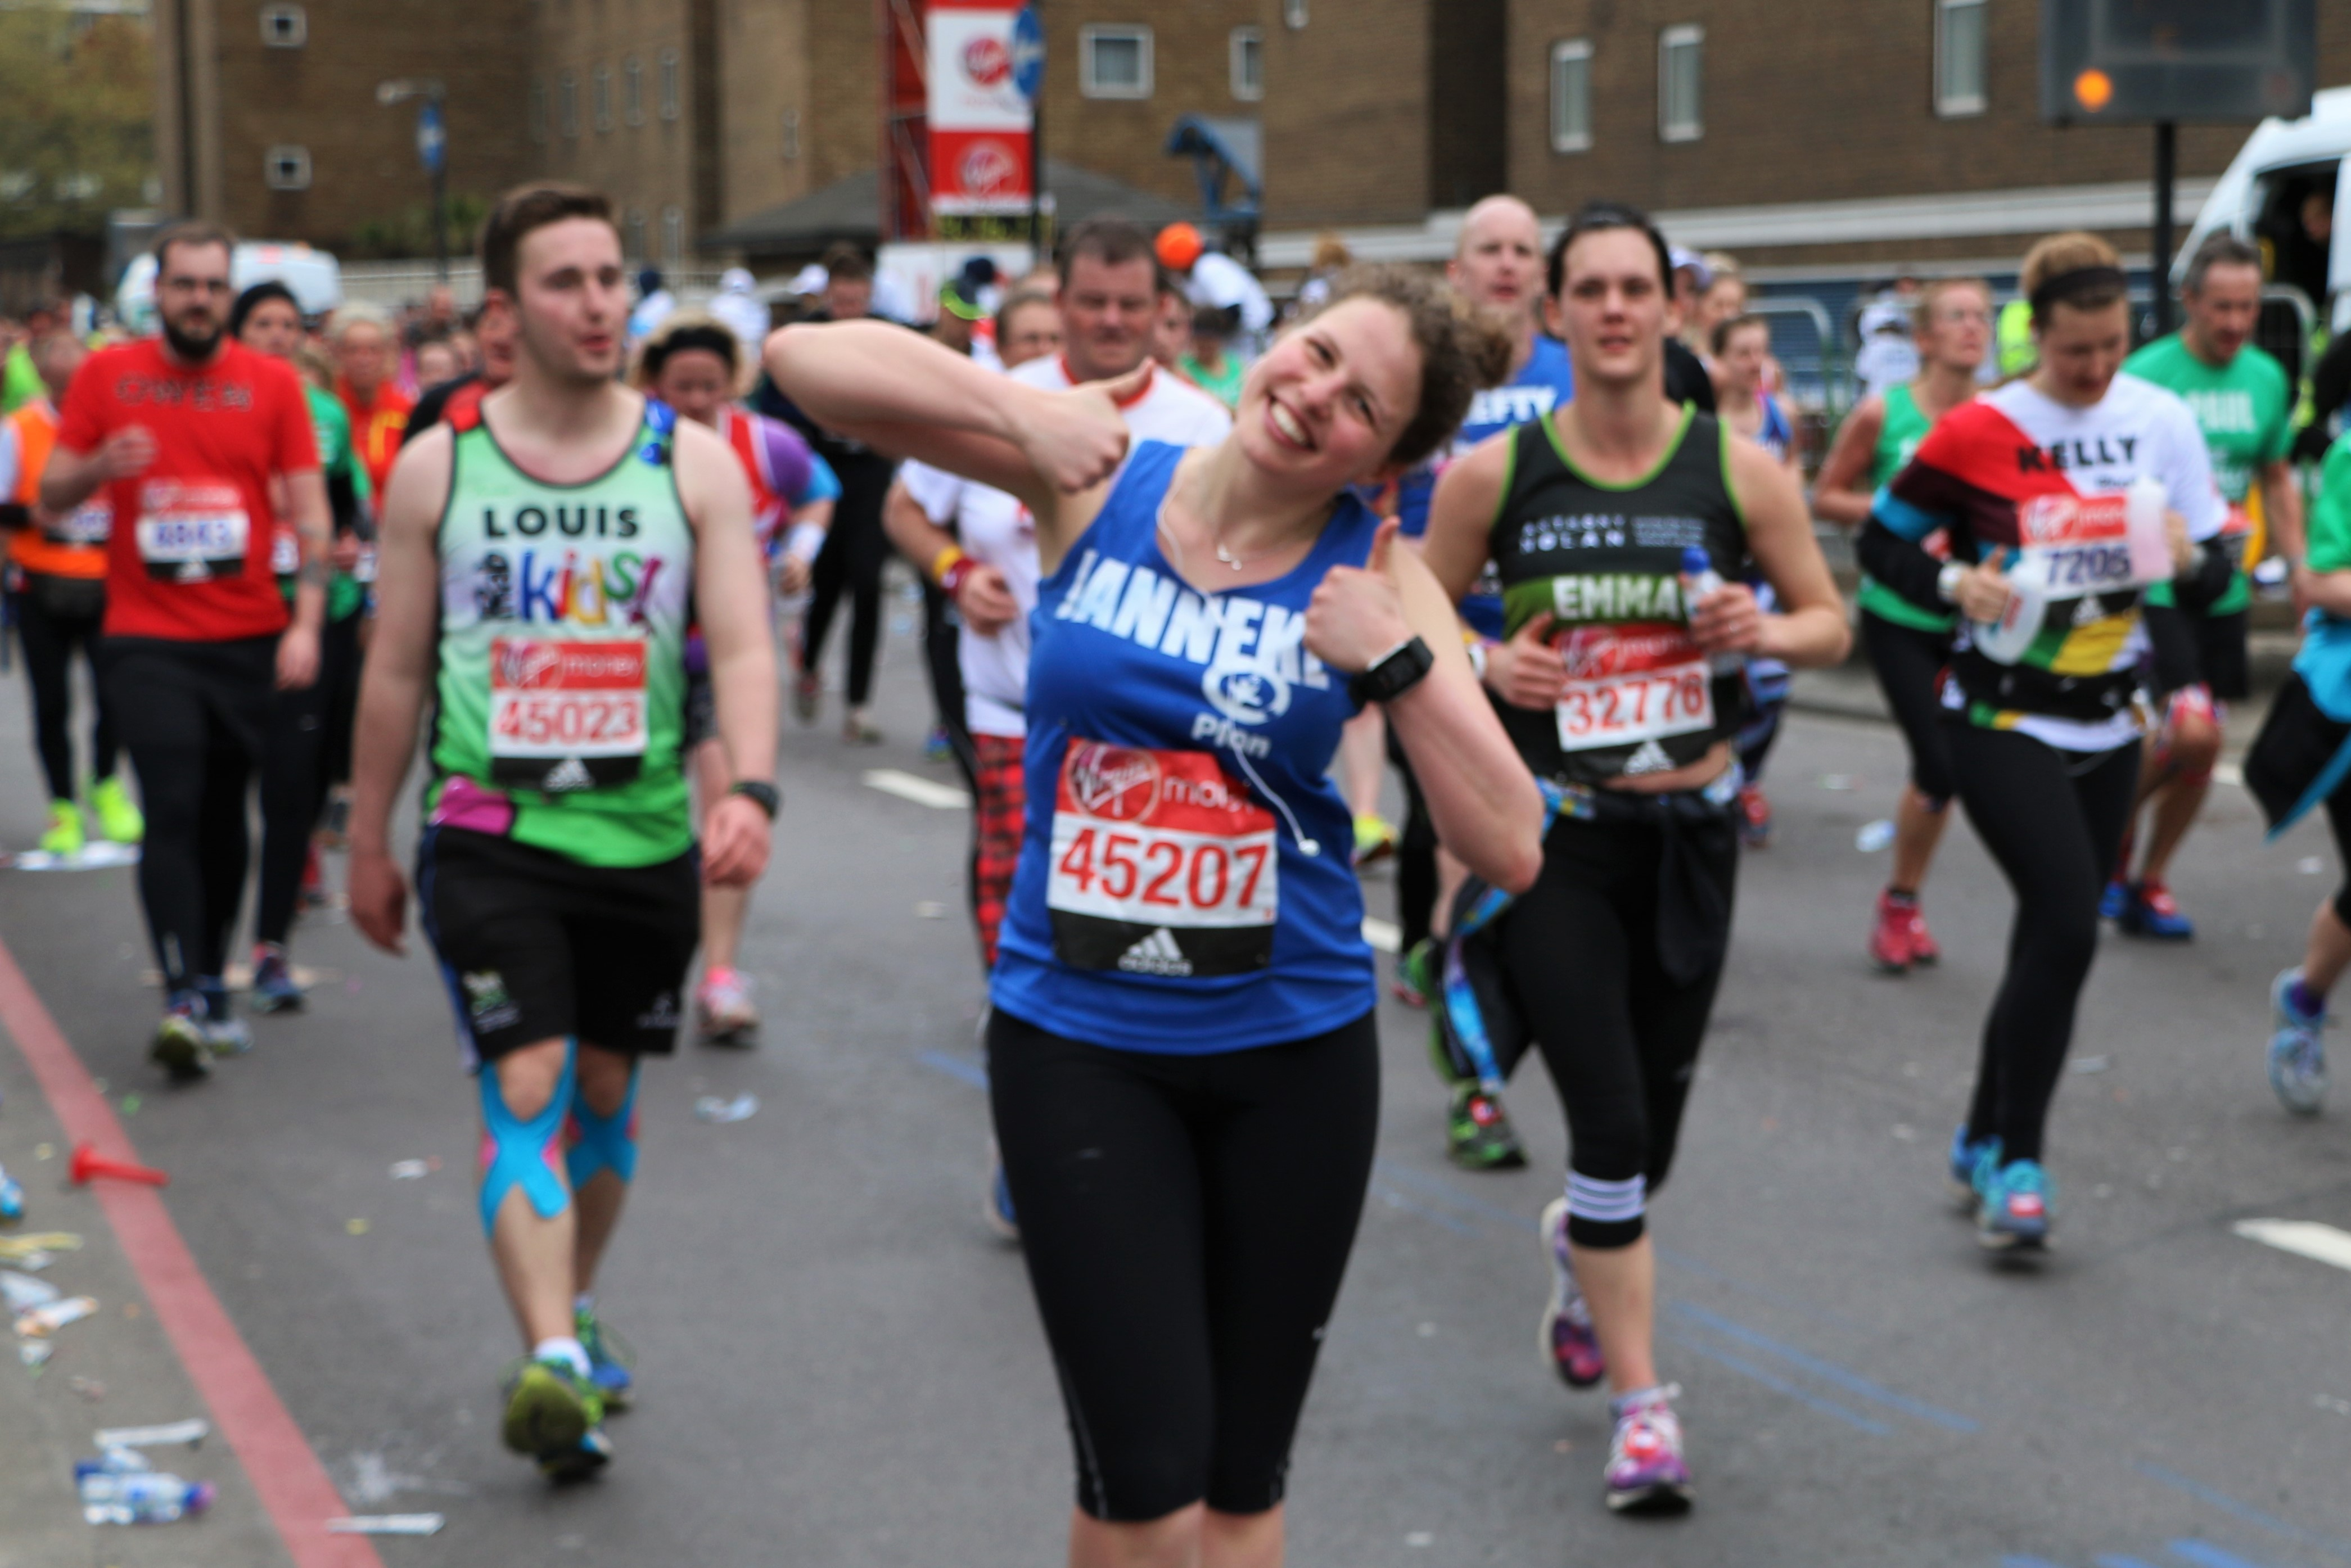 Janneke, a Plan International UK London marathon runner